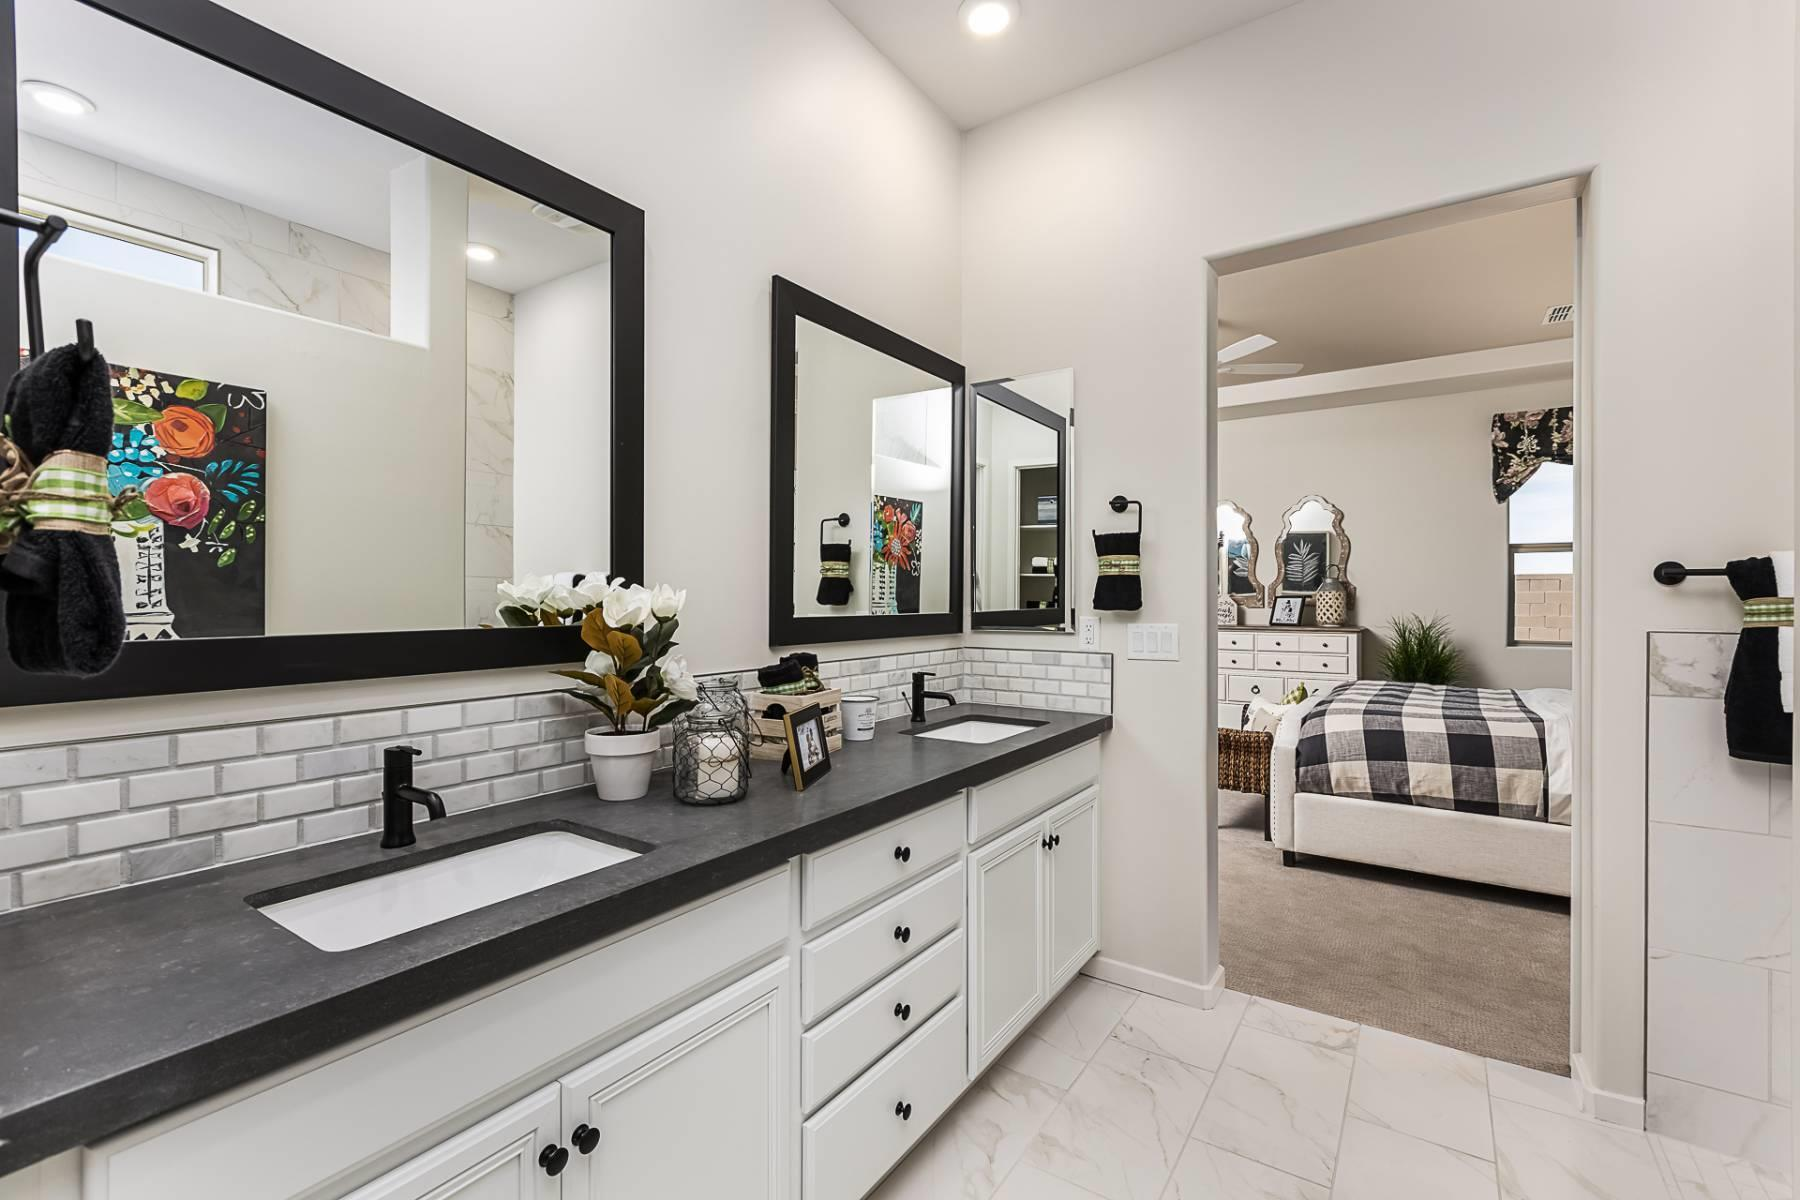 Bathroom featured in the Plan 2929 By Elliott Homes - Arizona in Yuma, AZ